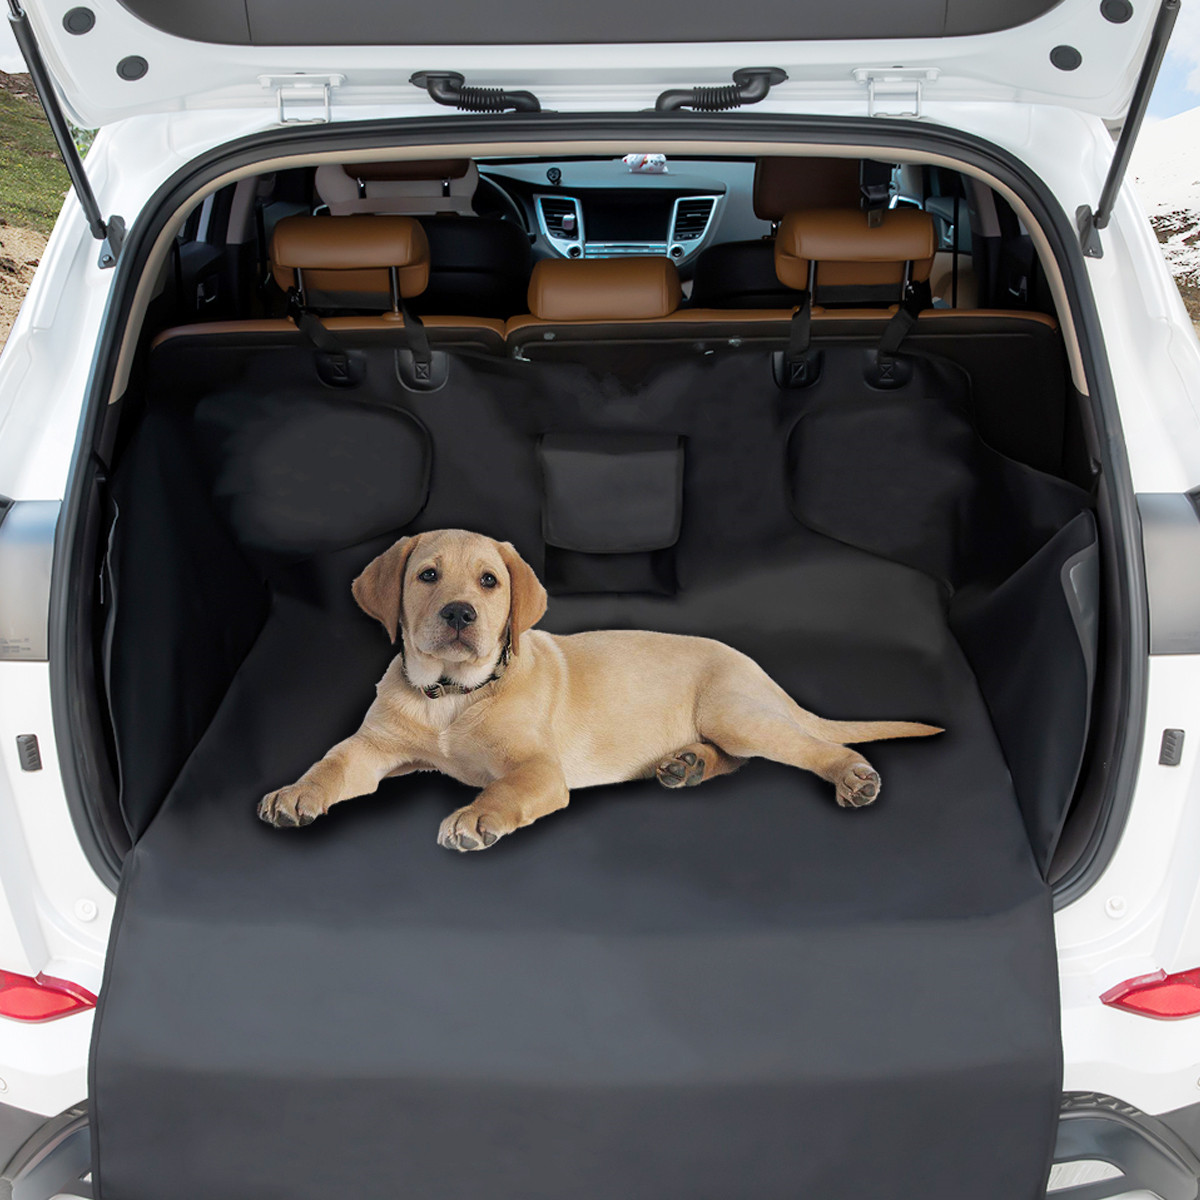 Pet Car Back Seat Cover Waterproof Oxford Cloth Focuspet Boot Blanket Safety Protector Carrying Storage Bag 105 x 175cm BlackPet Car Back Seat Cover Waterproof Oxford Cloth Focuspet Boot Blanket Safety Protector Carrying Storage Bag 105 x 175cm Black